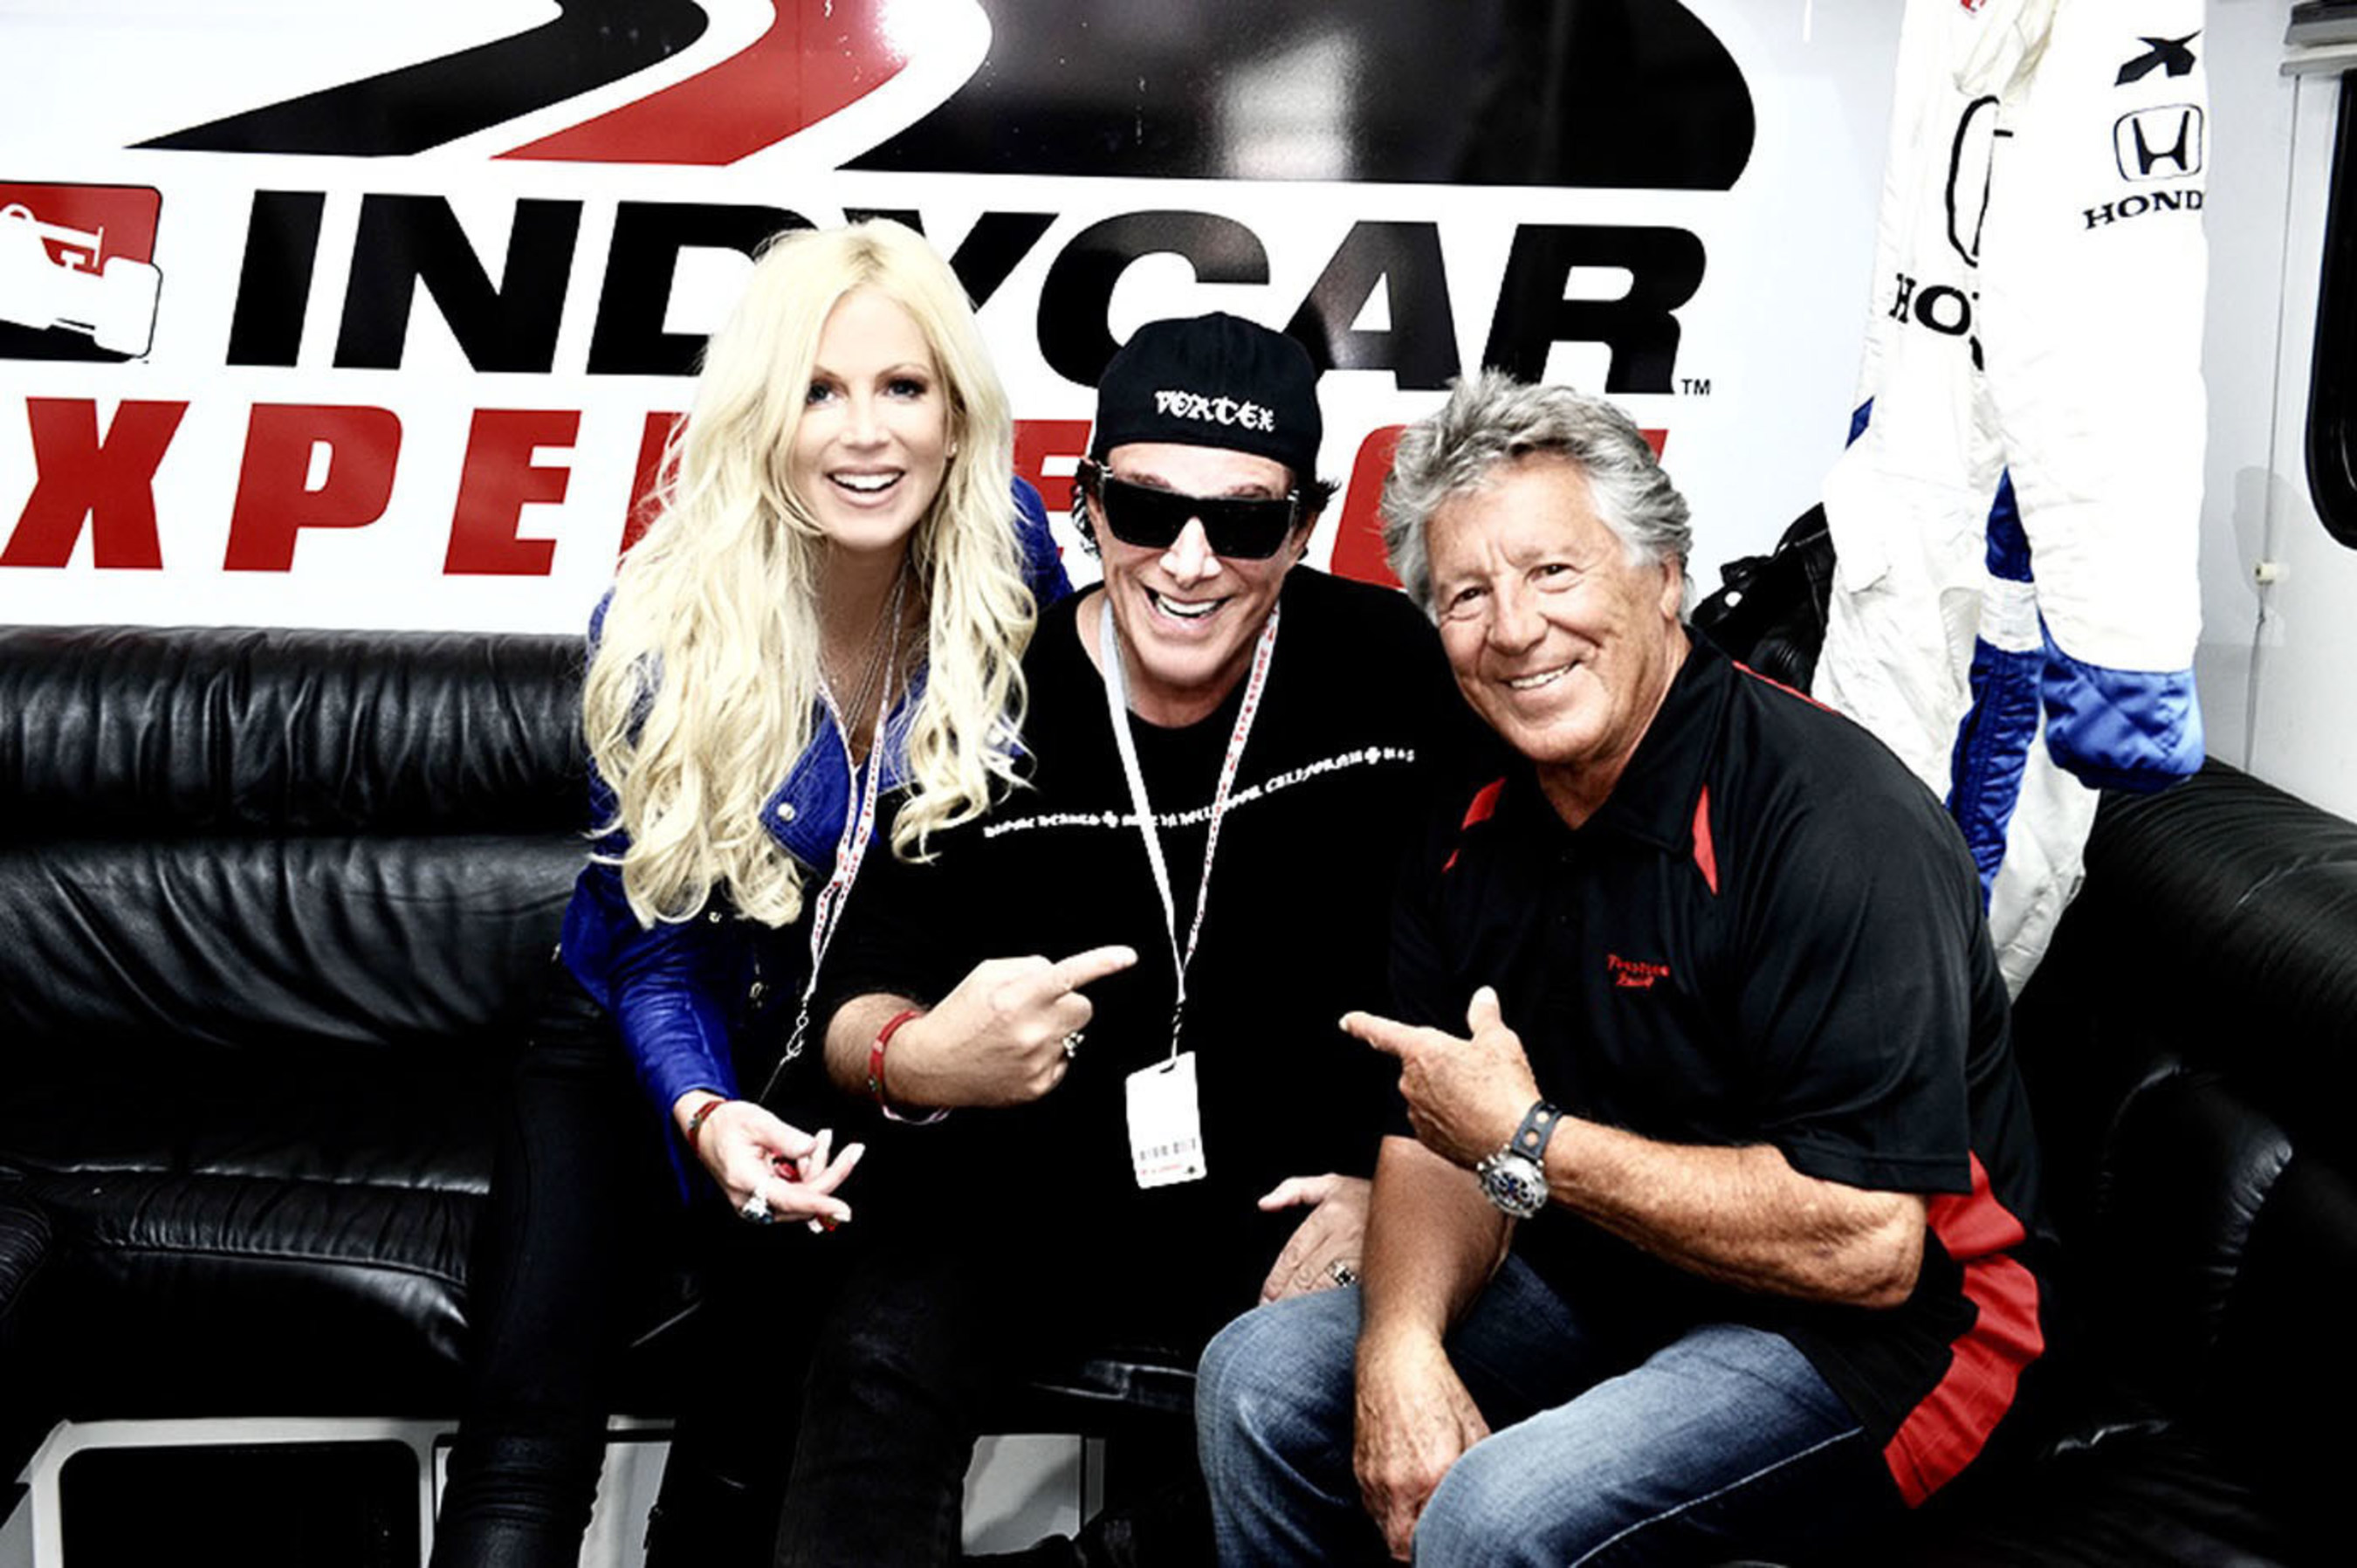 Journey Guitarist, Neal Schon Suited Up And Took The Track With Longtime Hero, Racing Legend Mario Andretti